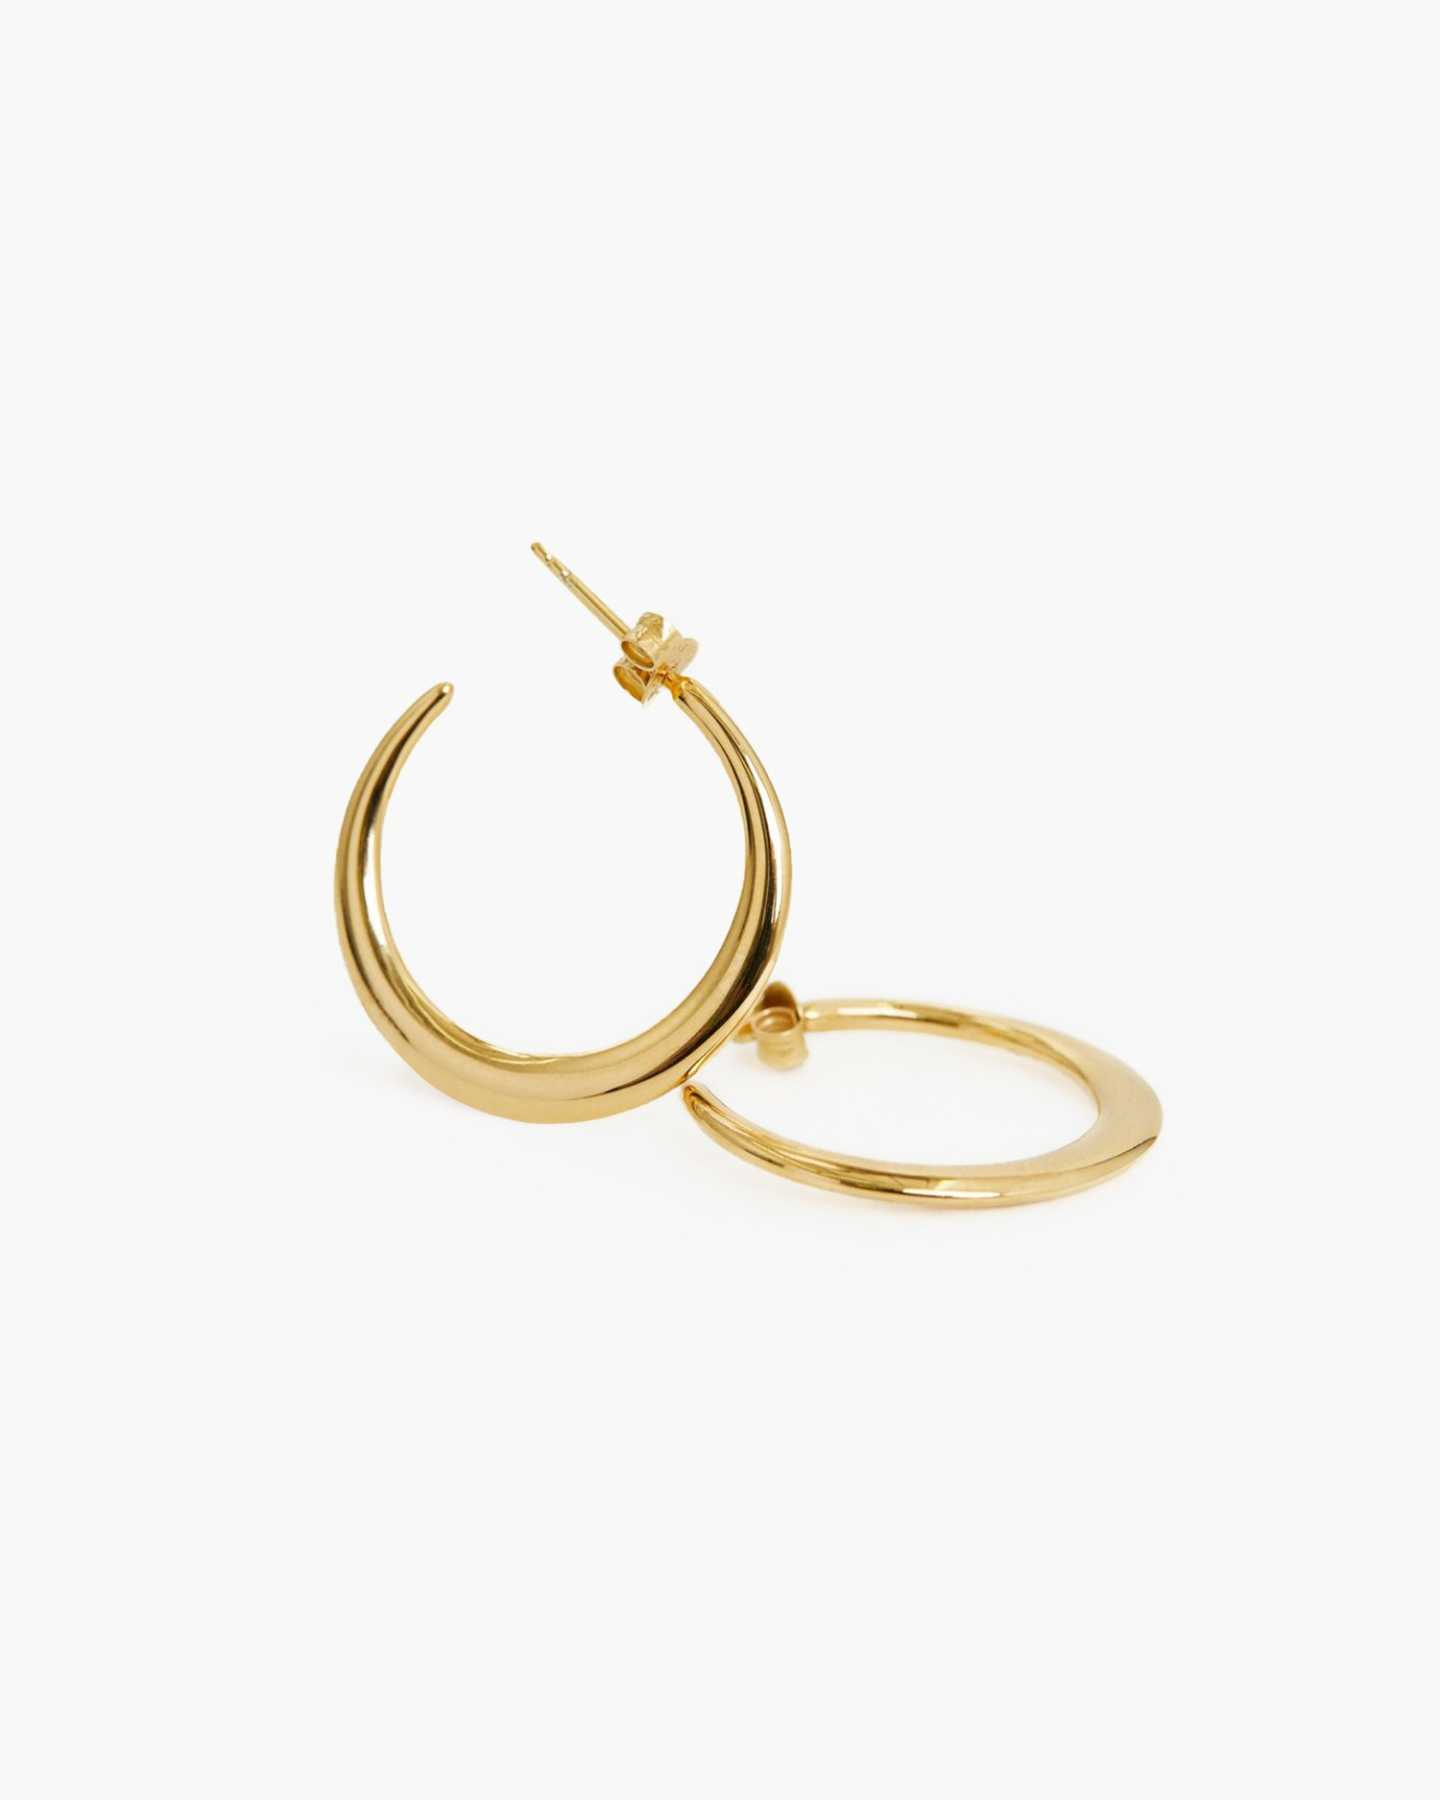 Dress Up Hoops - Gold Vermeil - 0 - Thumbnail